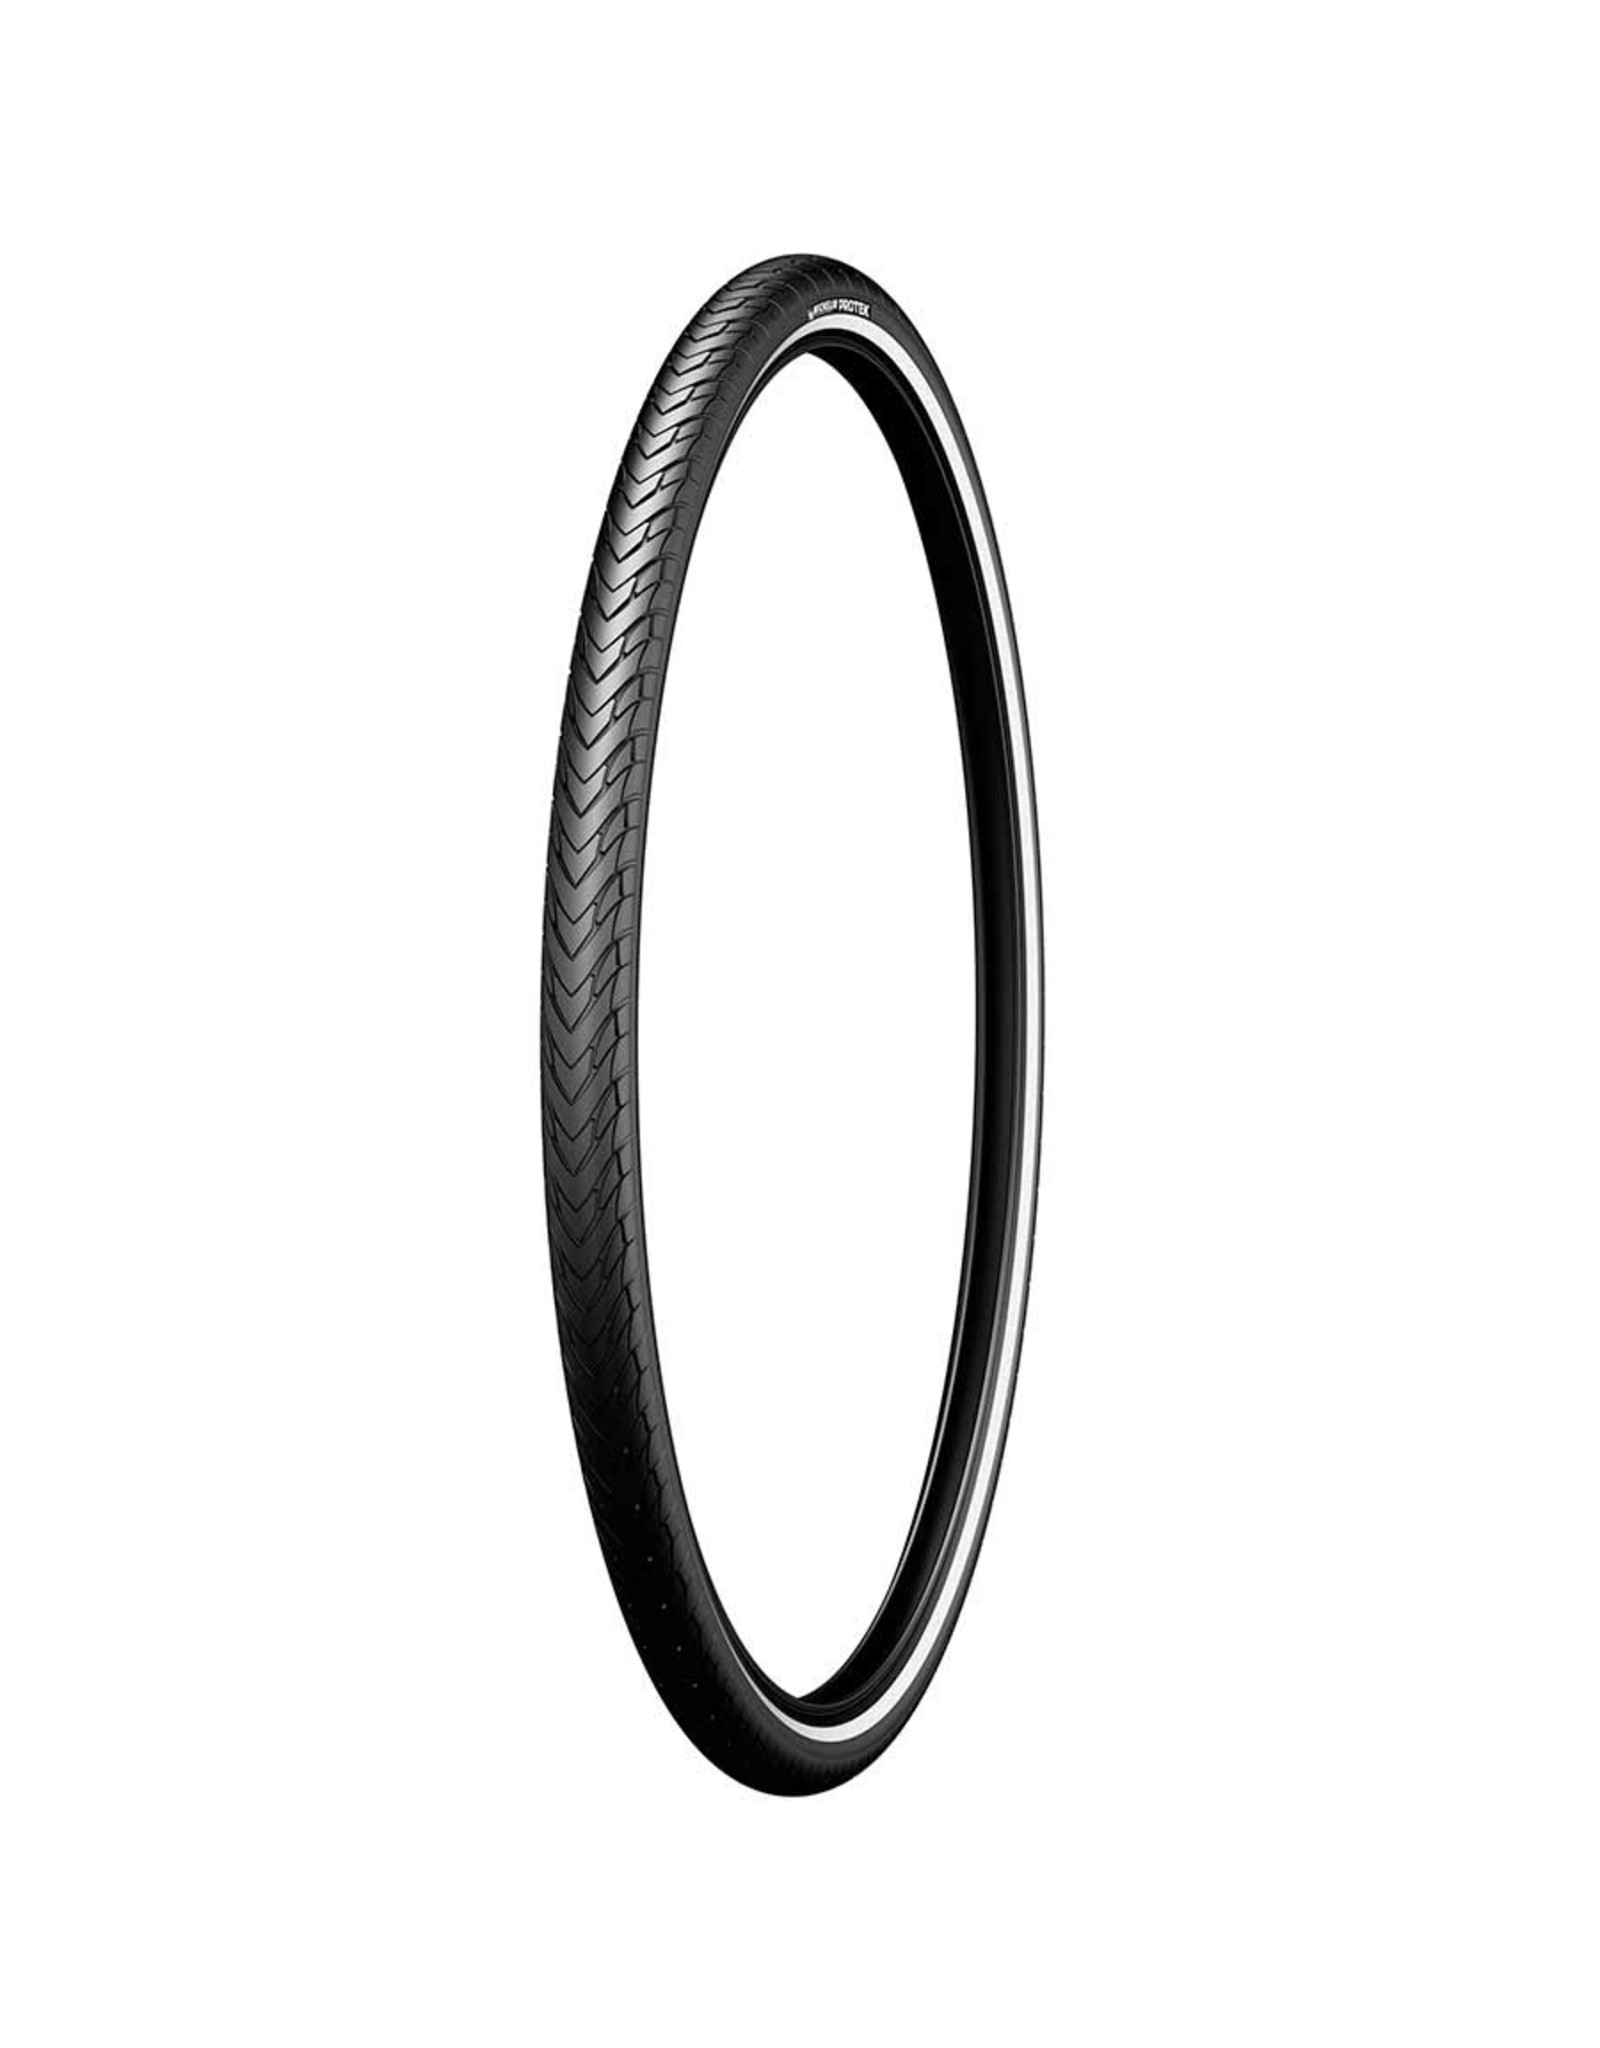 Michelin Michelin, Protek, Tire, 700x40C, Wire, Clincher, Protek 1mm, Reflex, 22TPI, Black